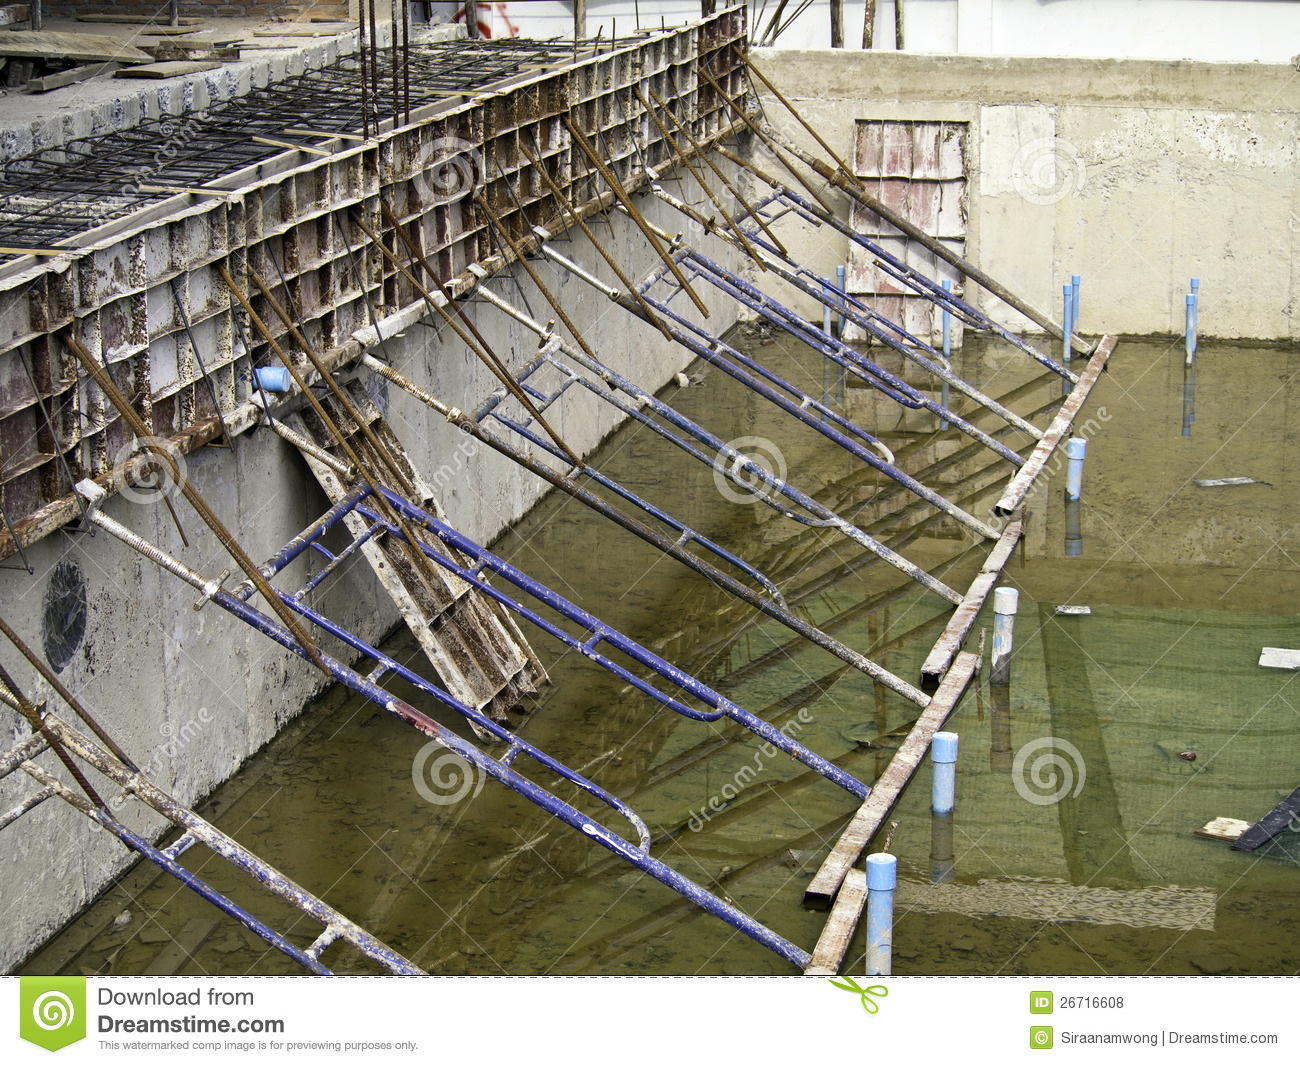 Swimming pool under construction royalty free stock photos image 26716608 for Swimming pool construction company